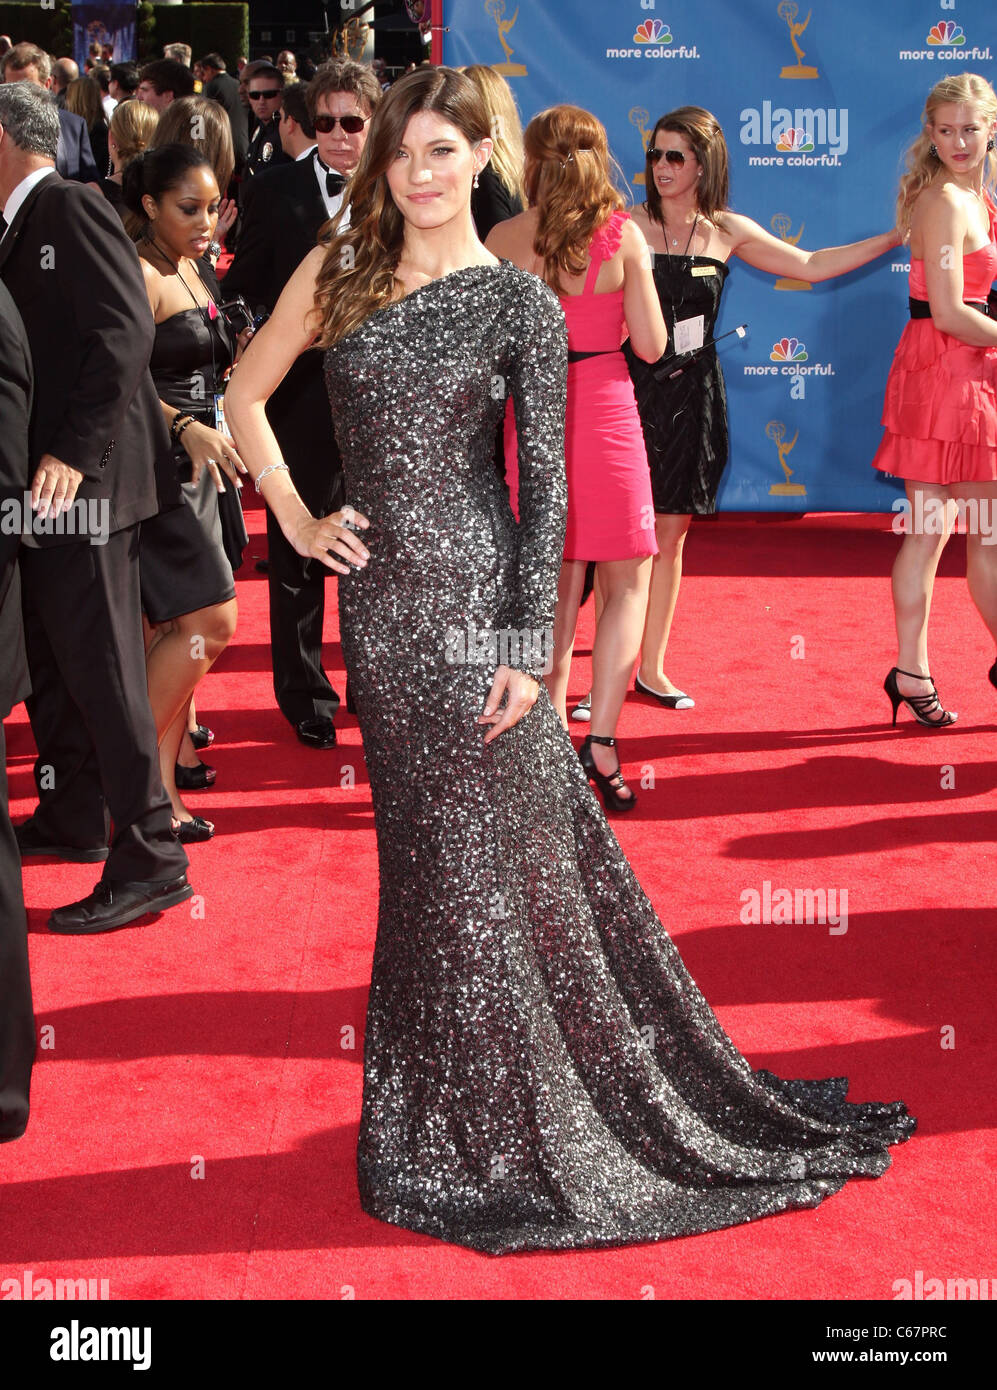 at arrivals for Academy of Television Arts & Sciences 62nd Primetime Emmy Awards - ARRIVALS, Nokia Theatre, - Stock Image